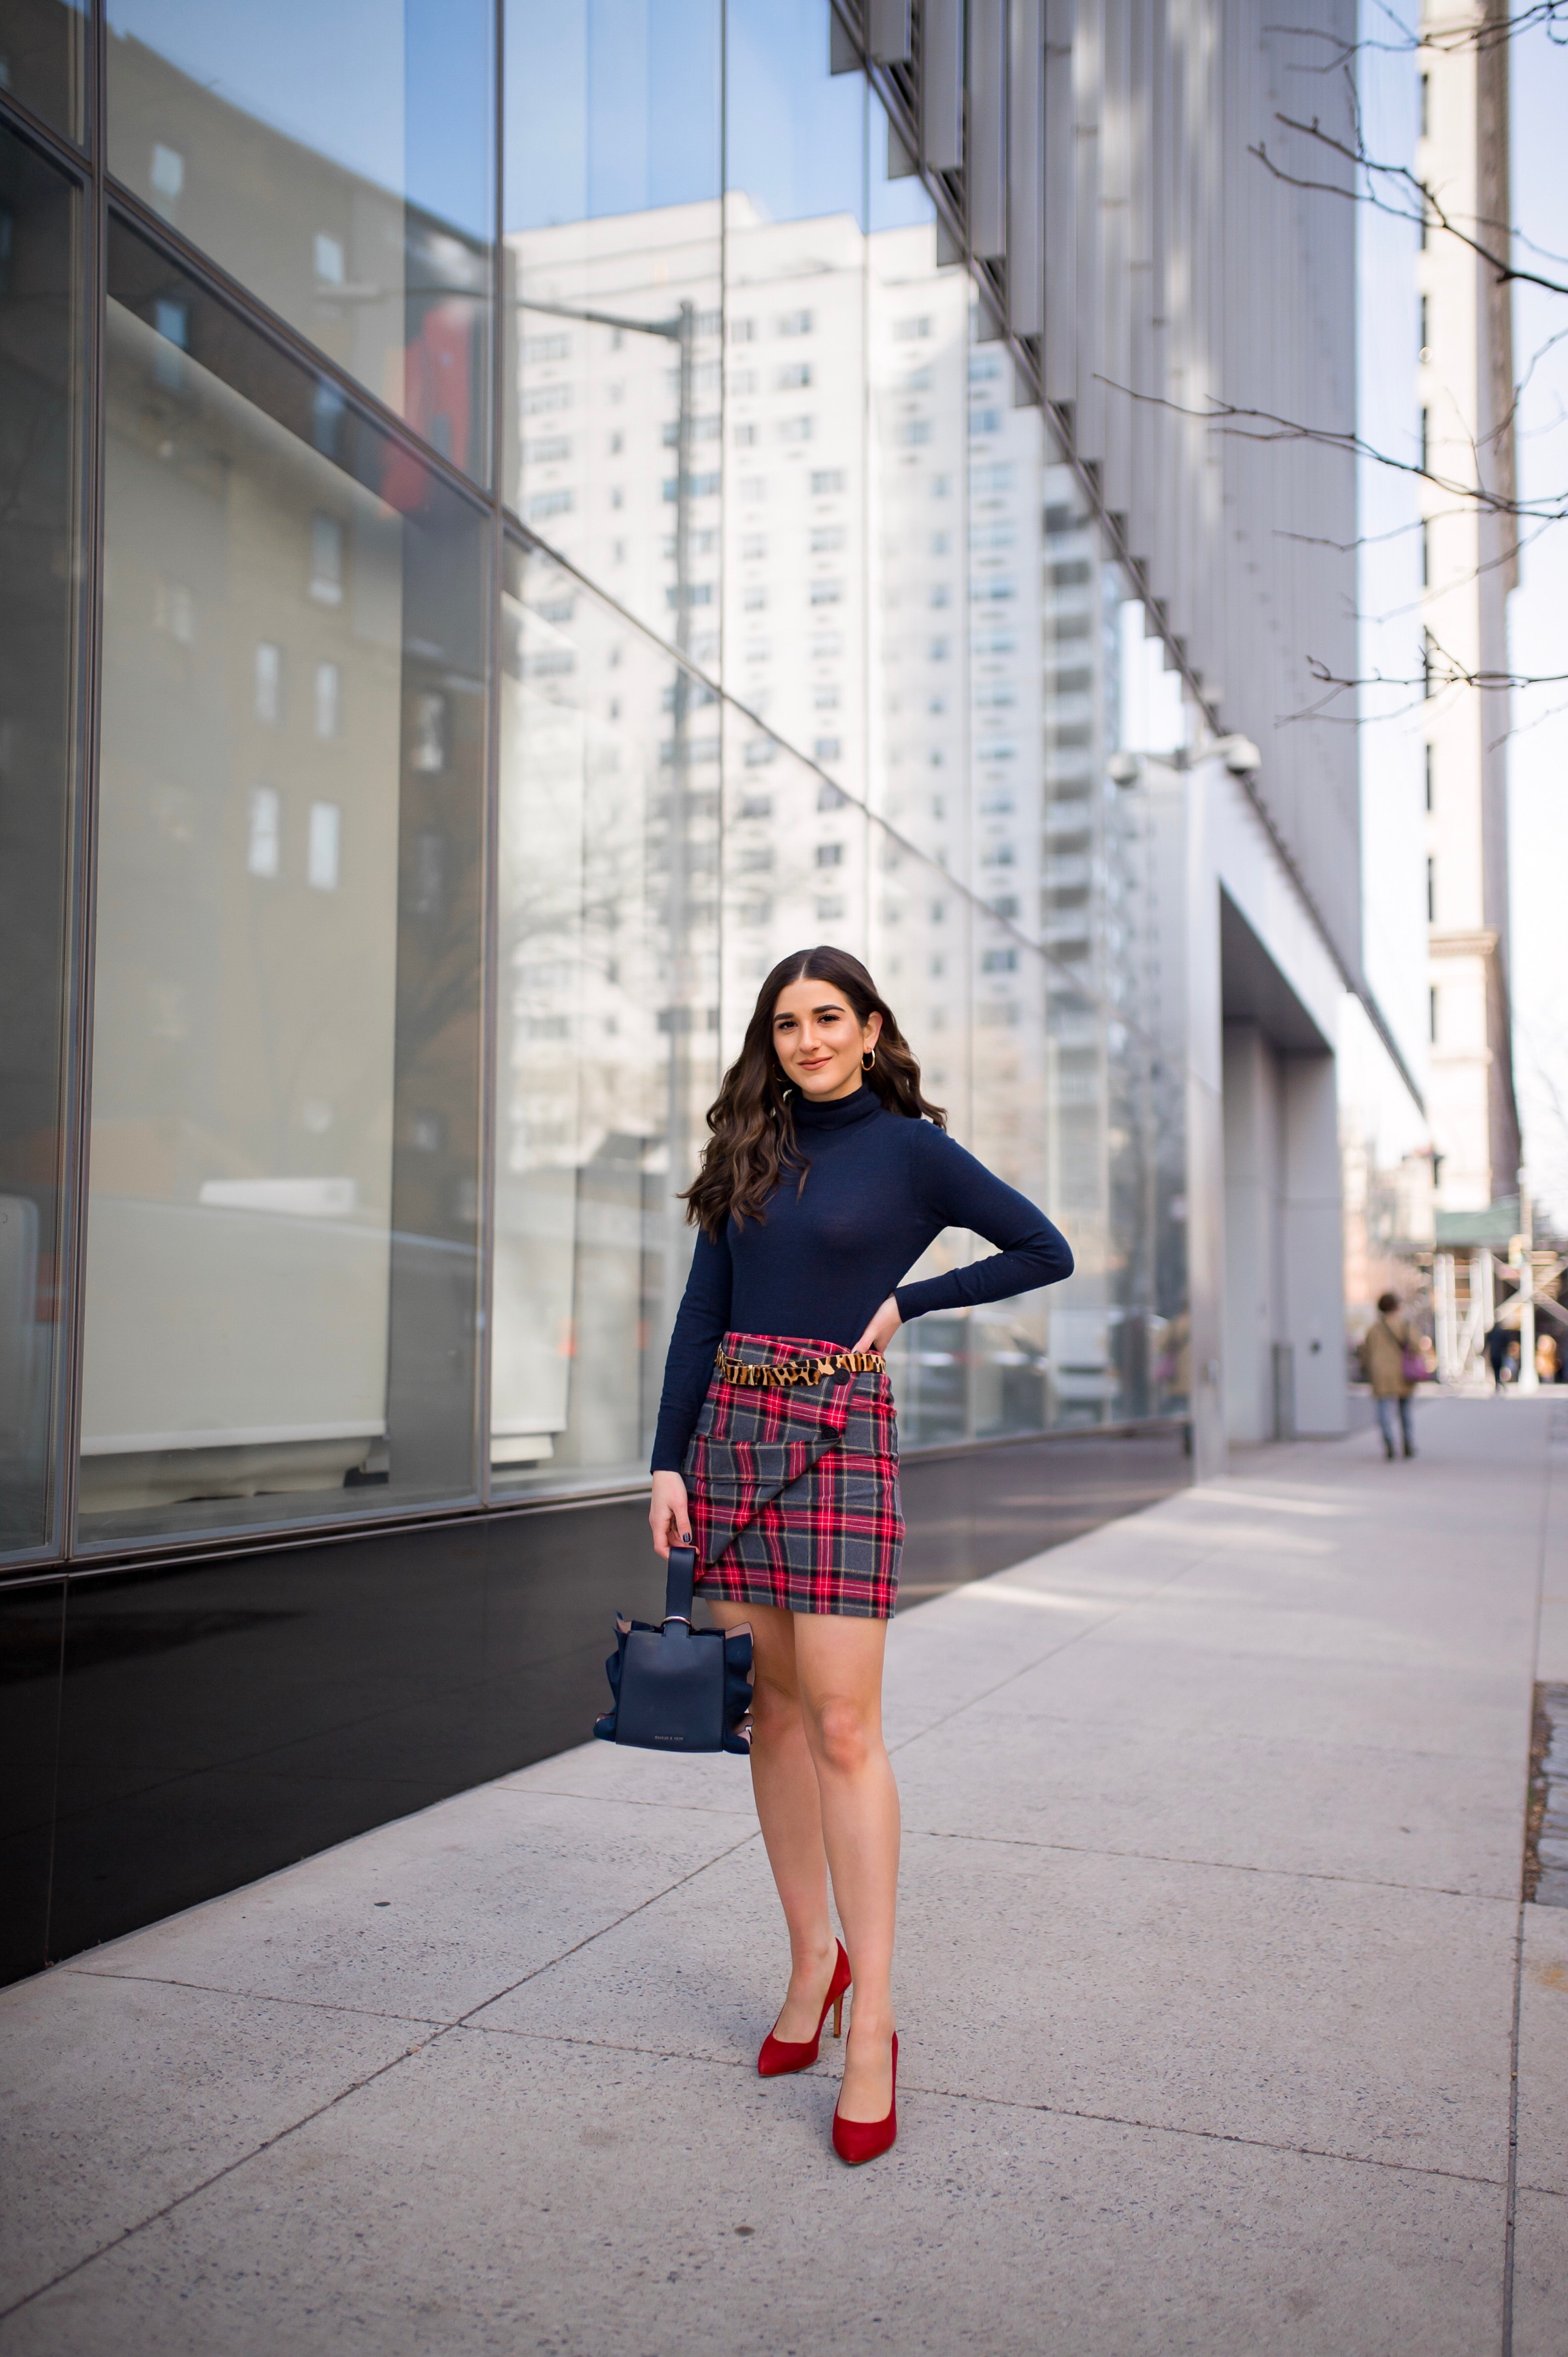 How NYFW Changed From My 1st To 12th Season Plaid Skirt Red Heels Esther Santer Fashion Blog NYC Street Style Blogger Outfit OOTD Trendy Shopping Navy Turtleneck Hair Goals Wear Winter Fall Shop Jcrew H&M Banana Republic Leopard Belt Accessories Bag .jpg